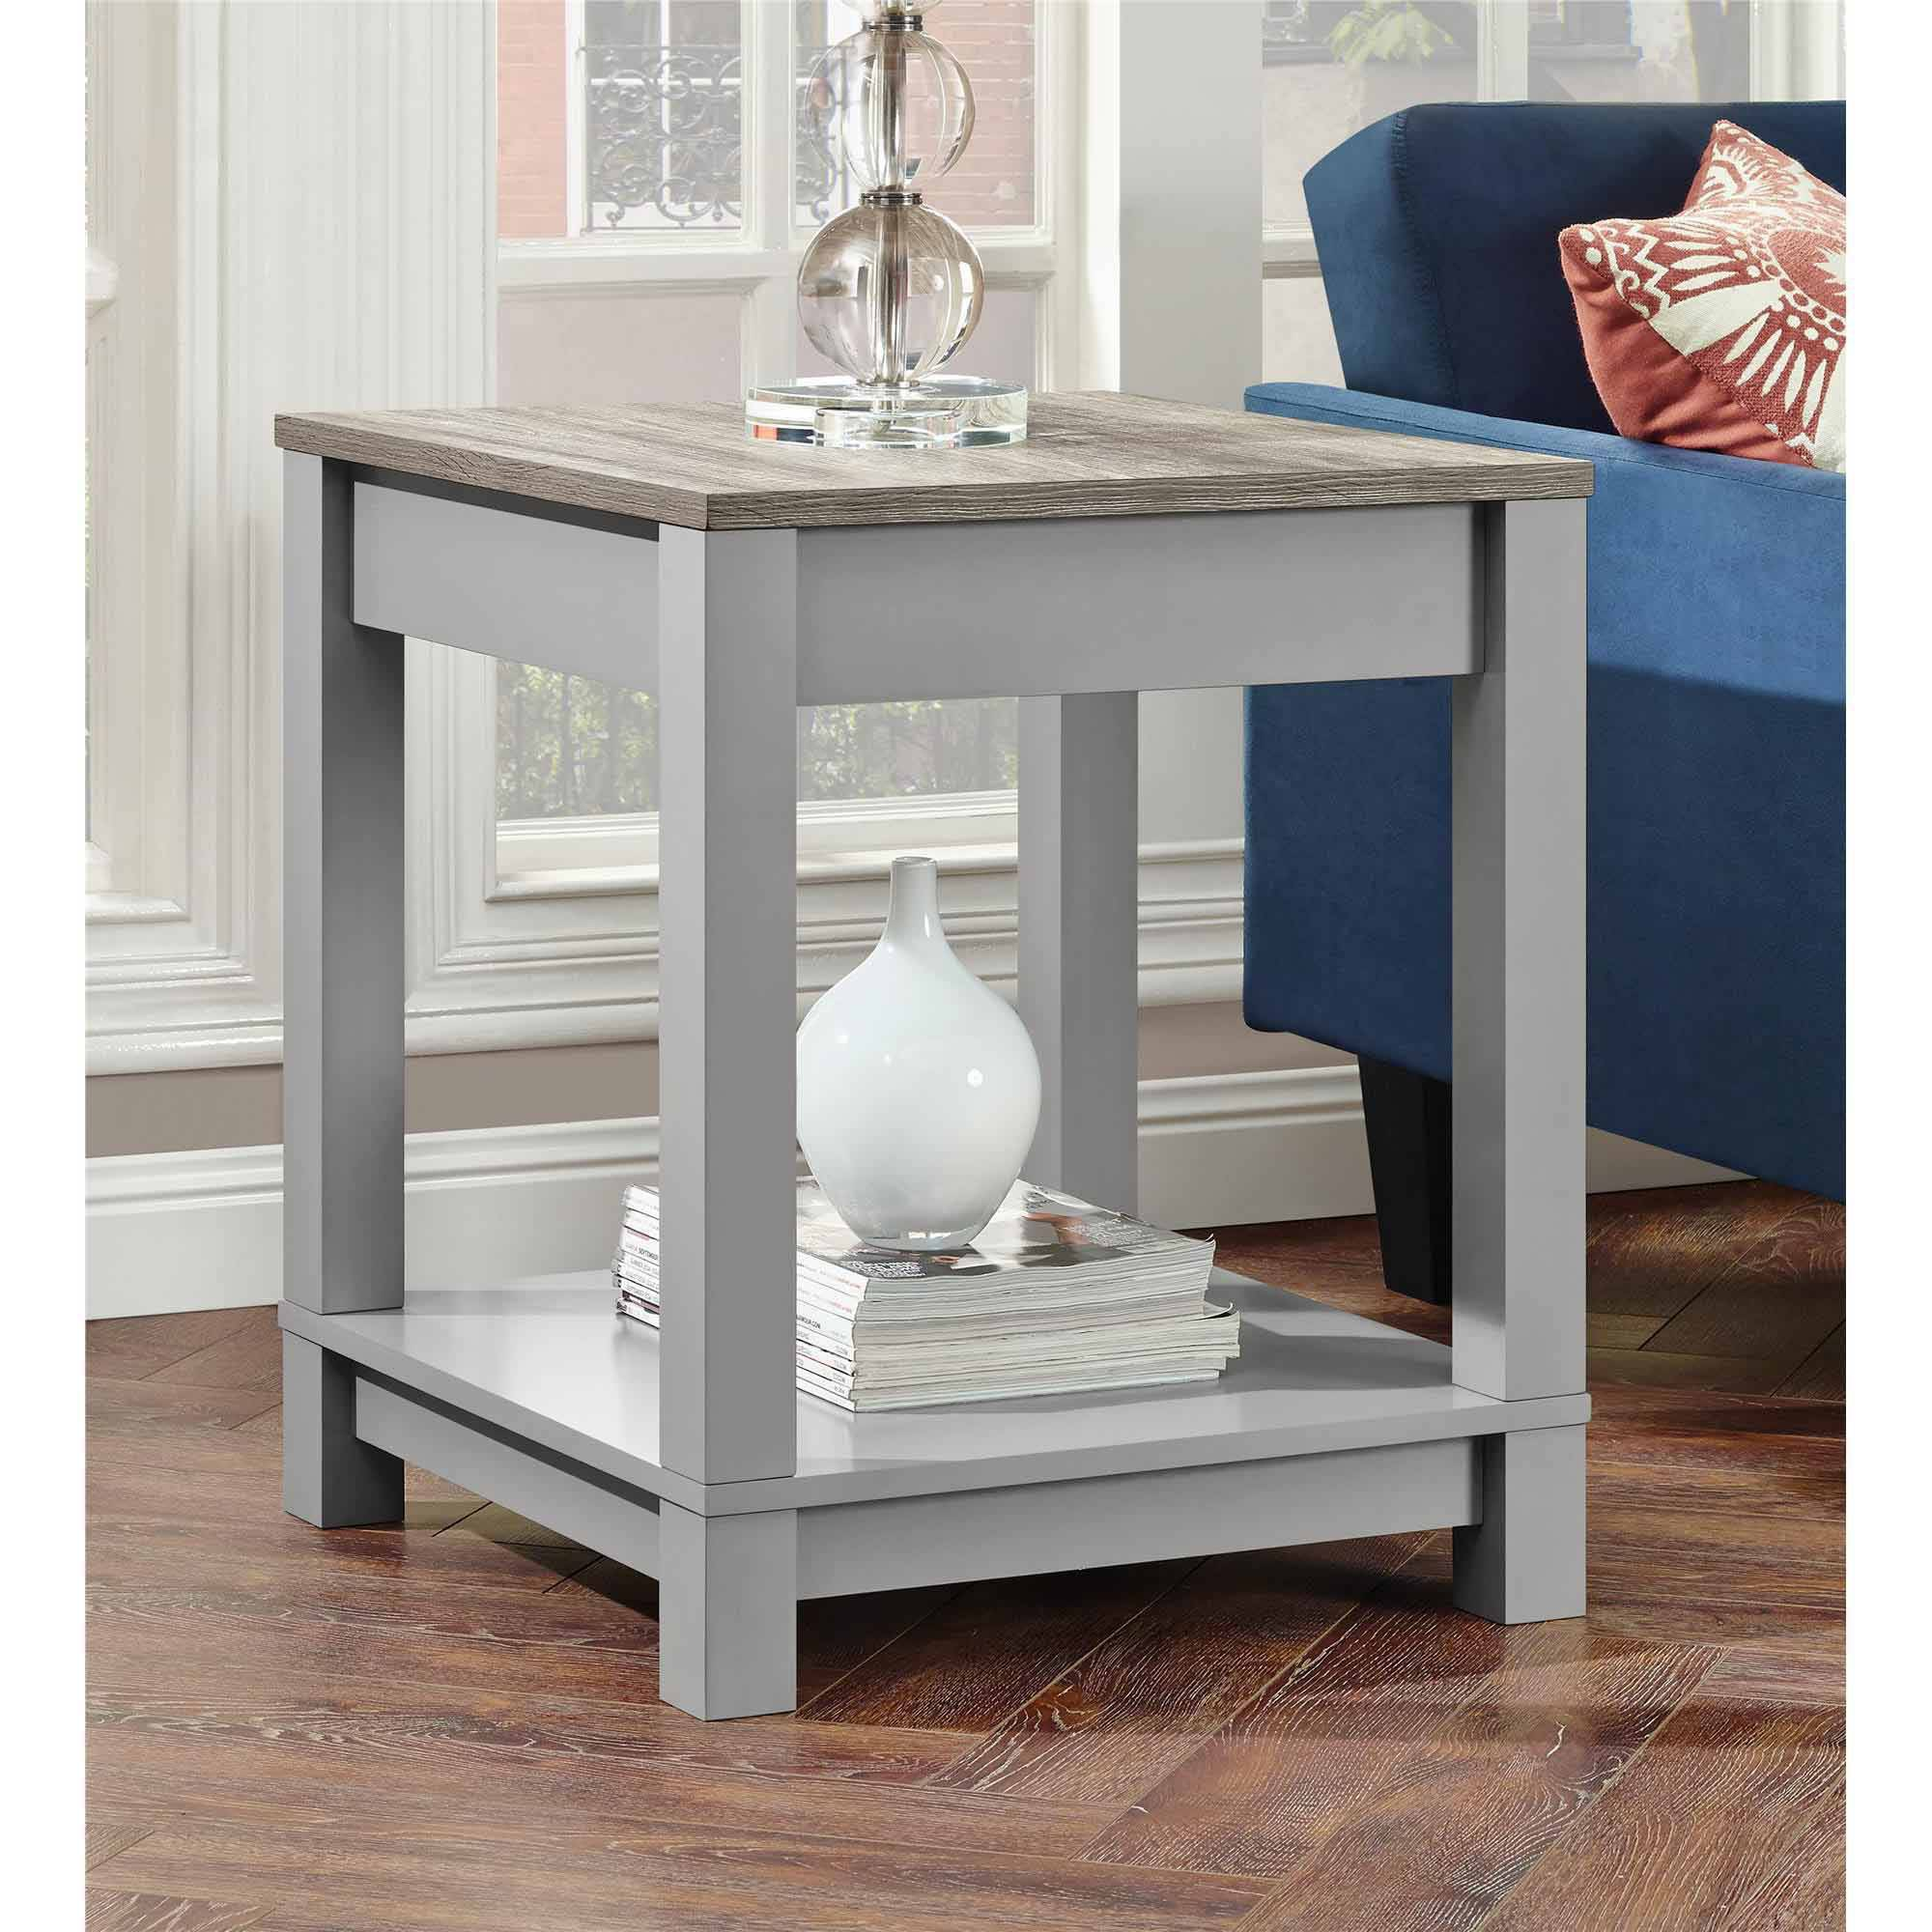 Better Homes and Gardens Langley Bay End Table, Gray Sonoma Oak by Altra